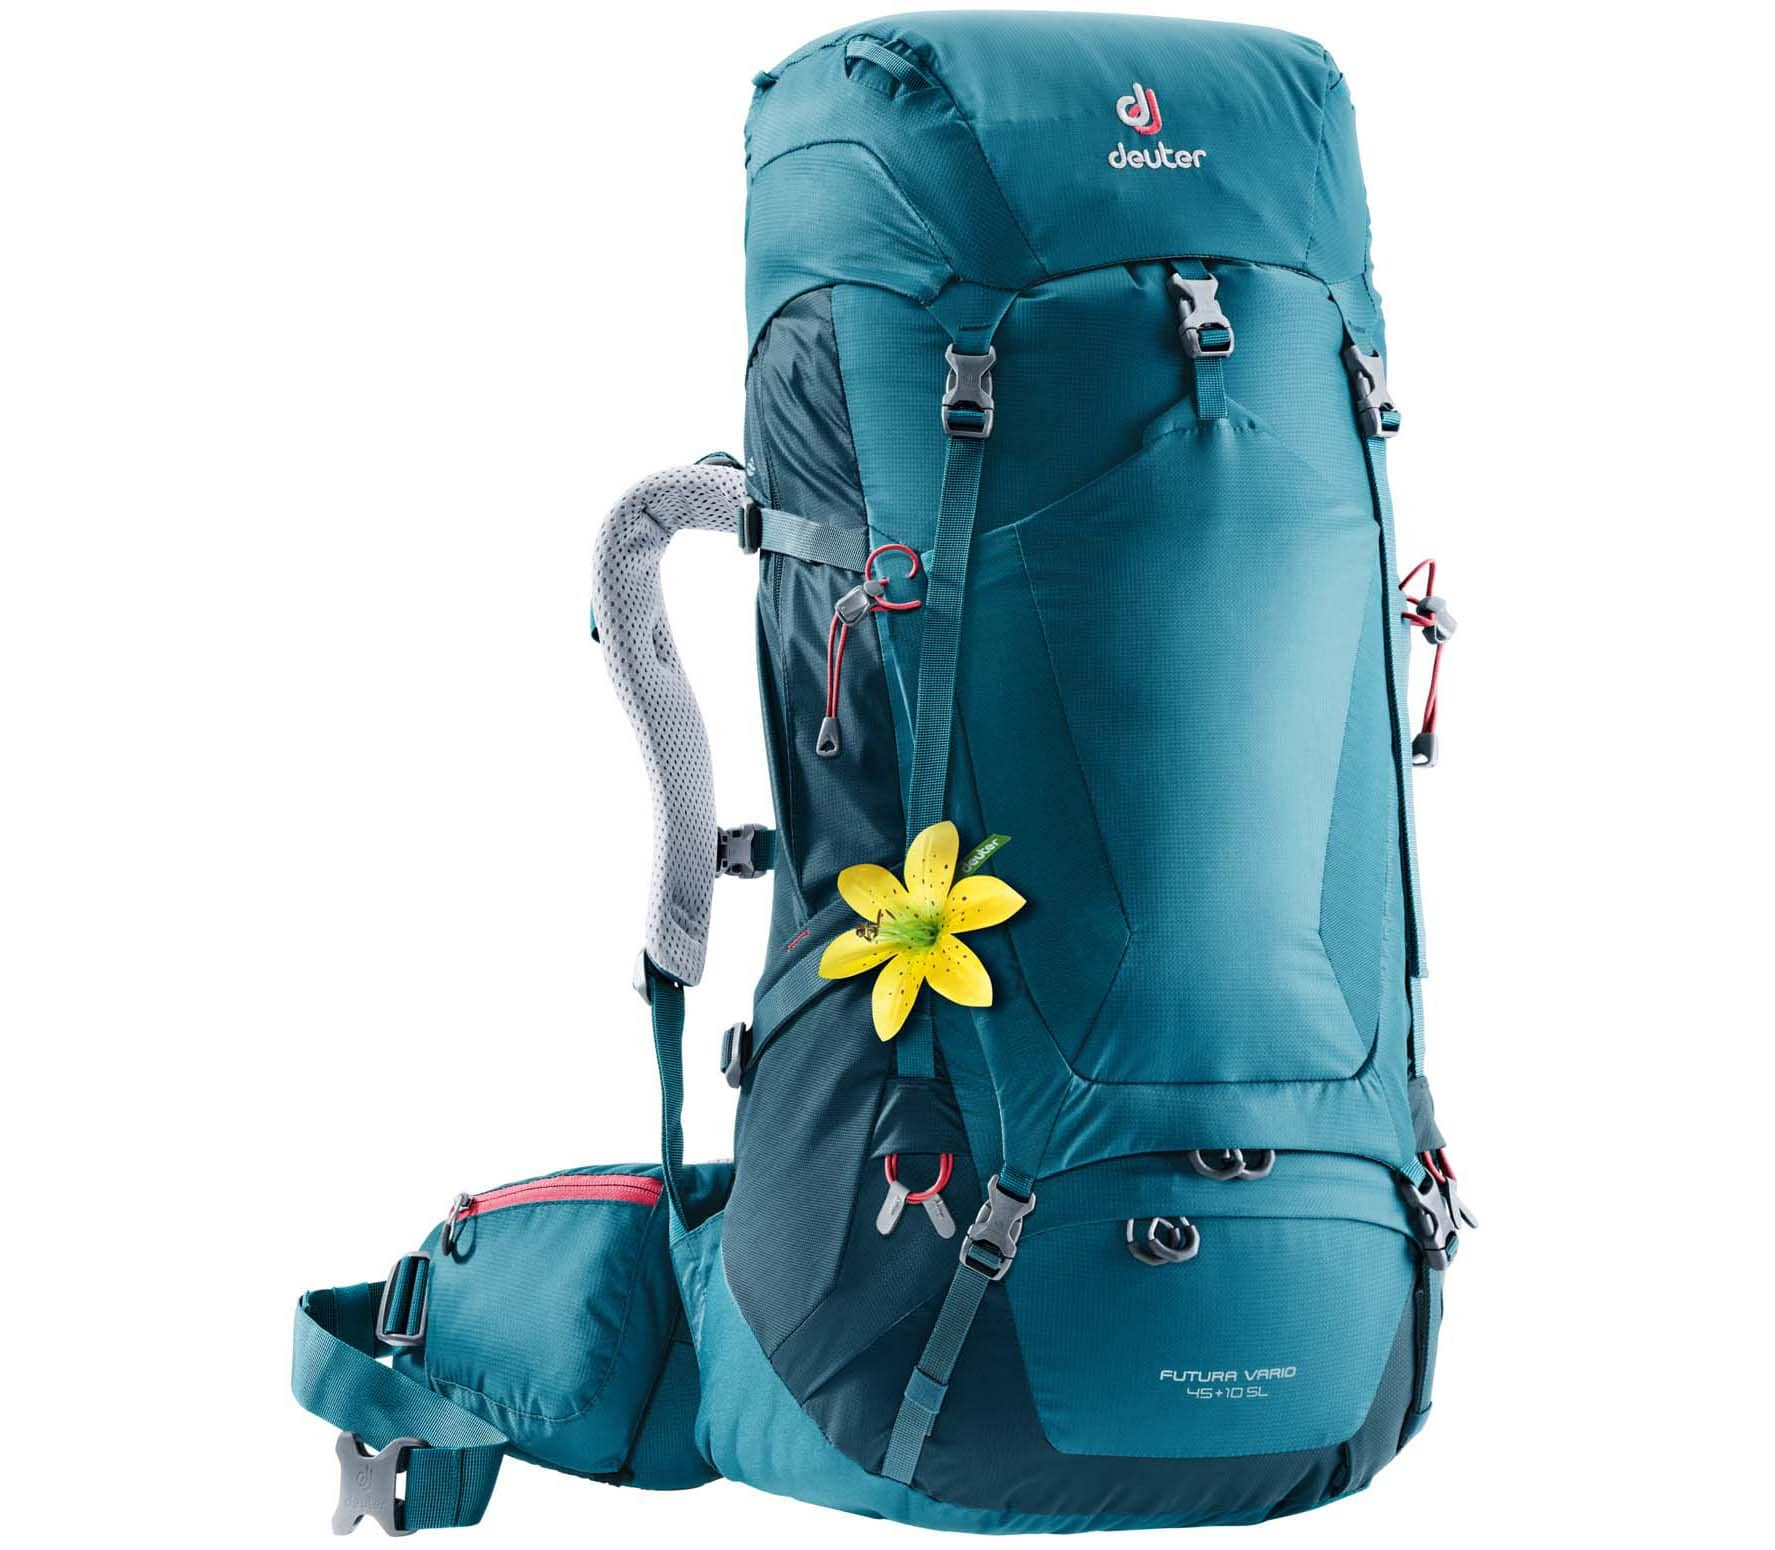 Deuter - Futura Vario 45 + 10 SL women's hiking backpack (blue)